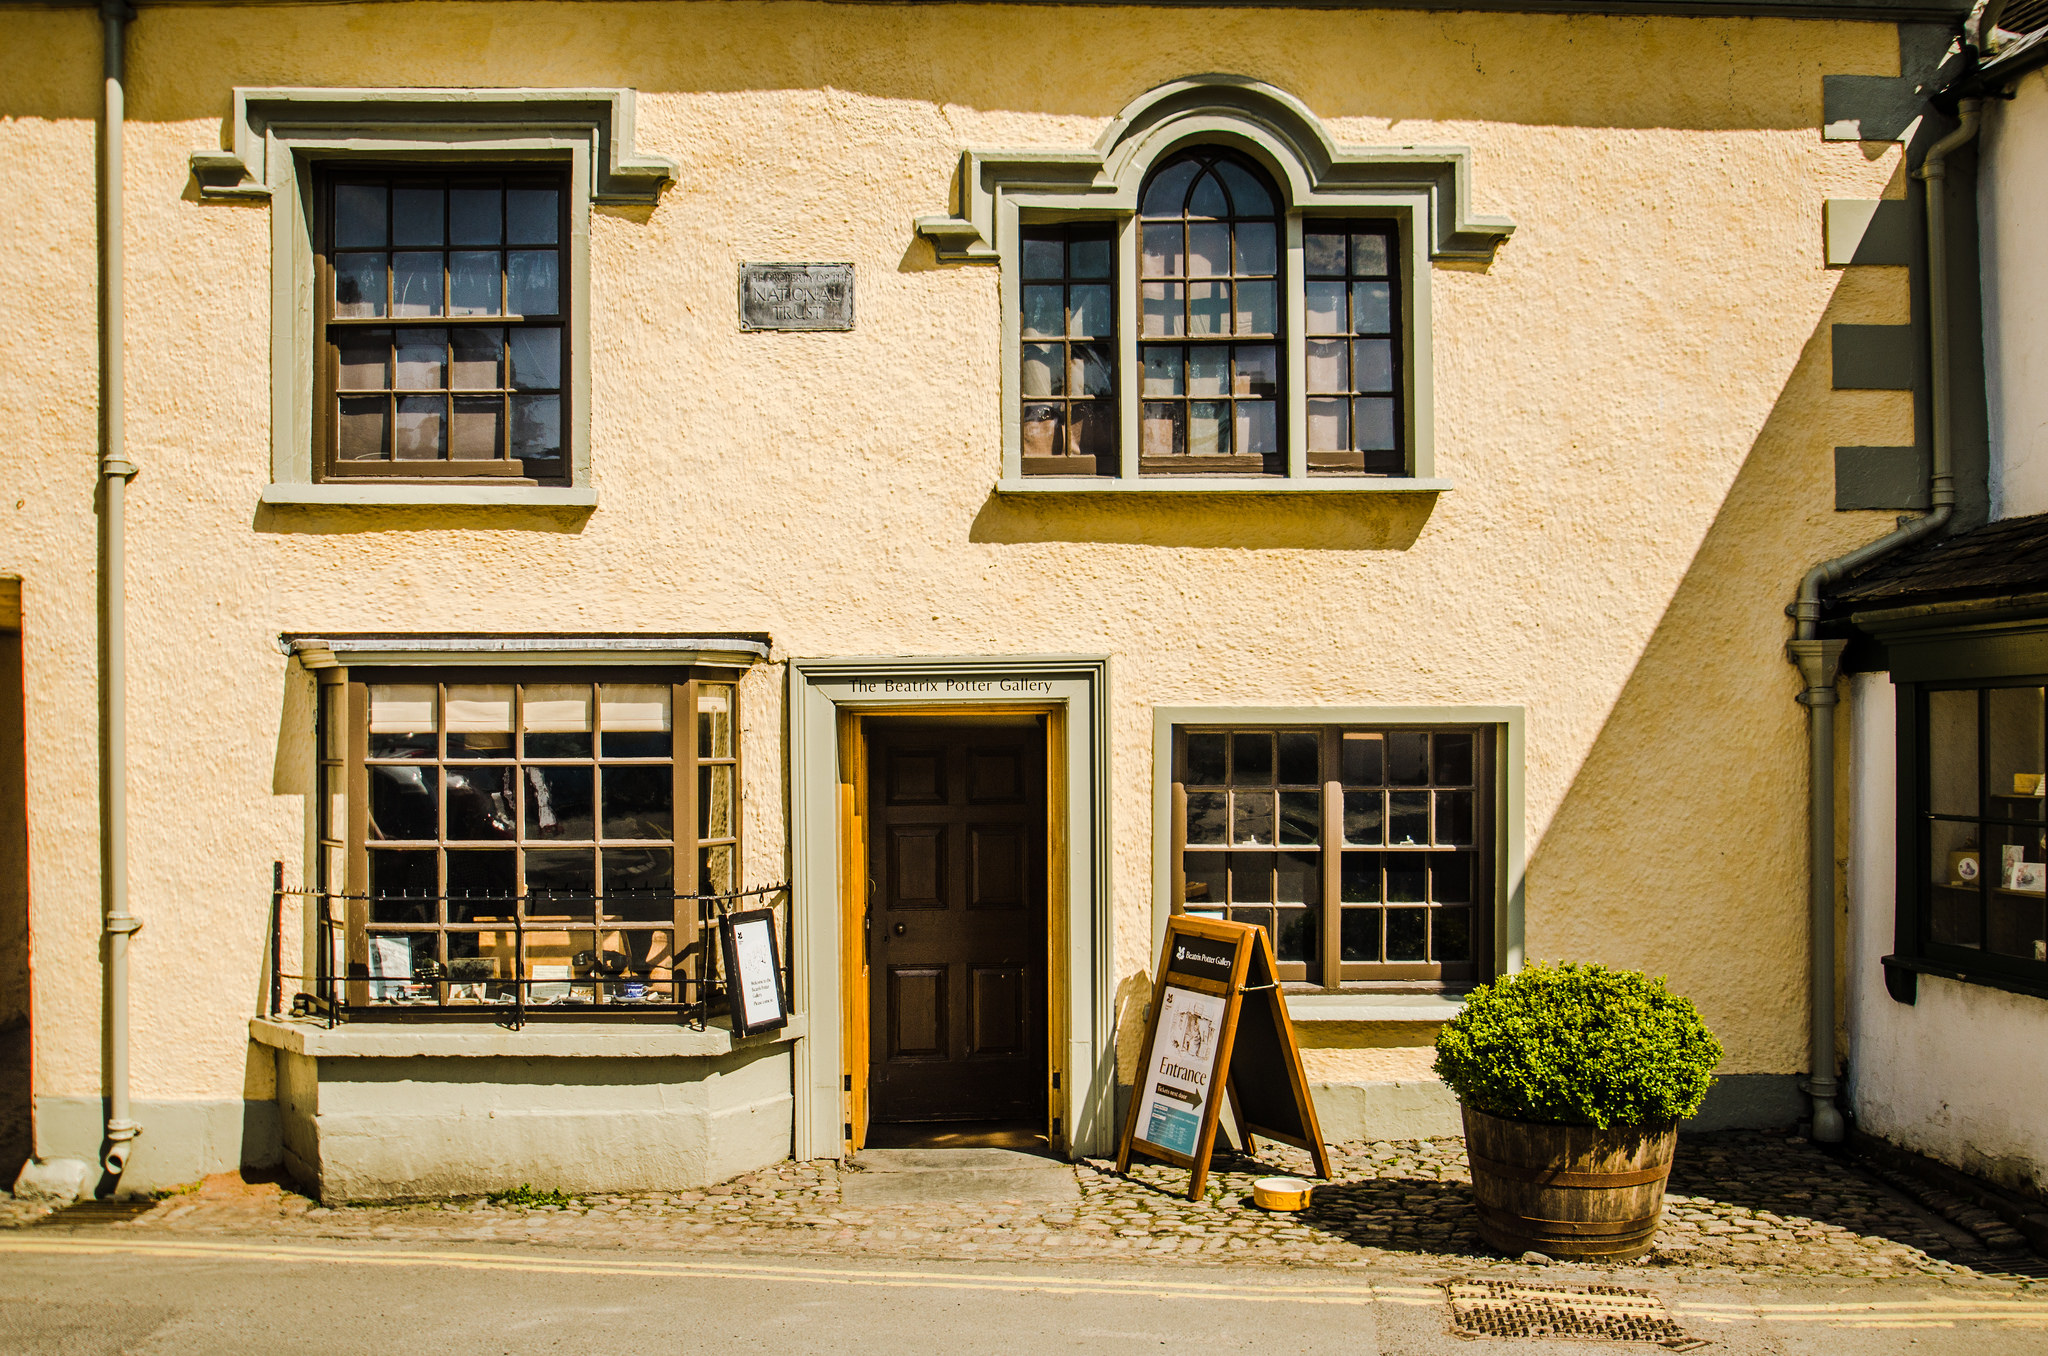 Exterior of the Beatrix Potter Gallery in Hawkshead. Photo courtesy of Sykes Collages.